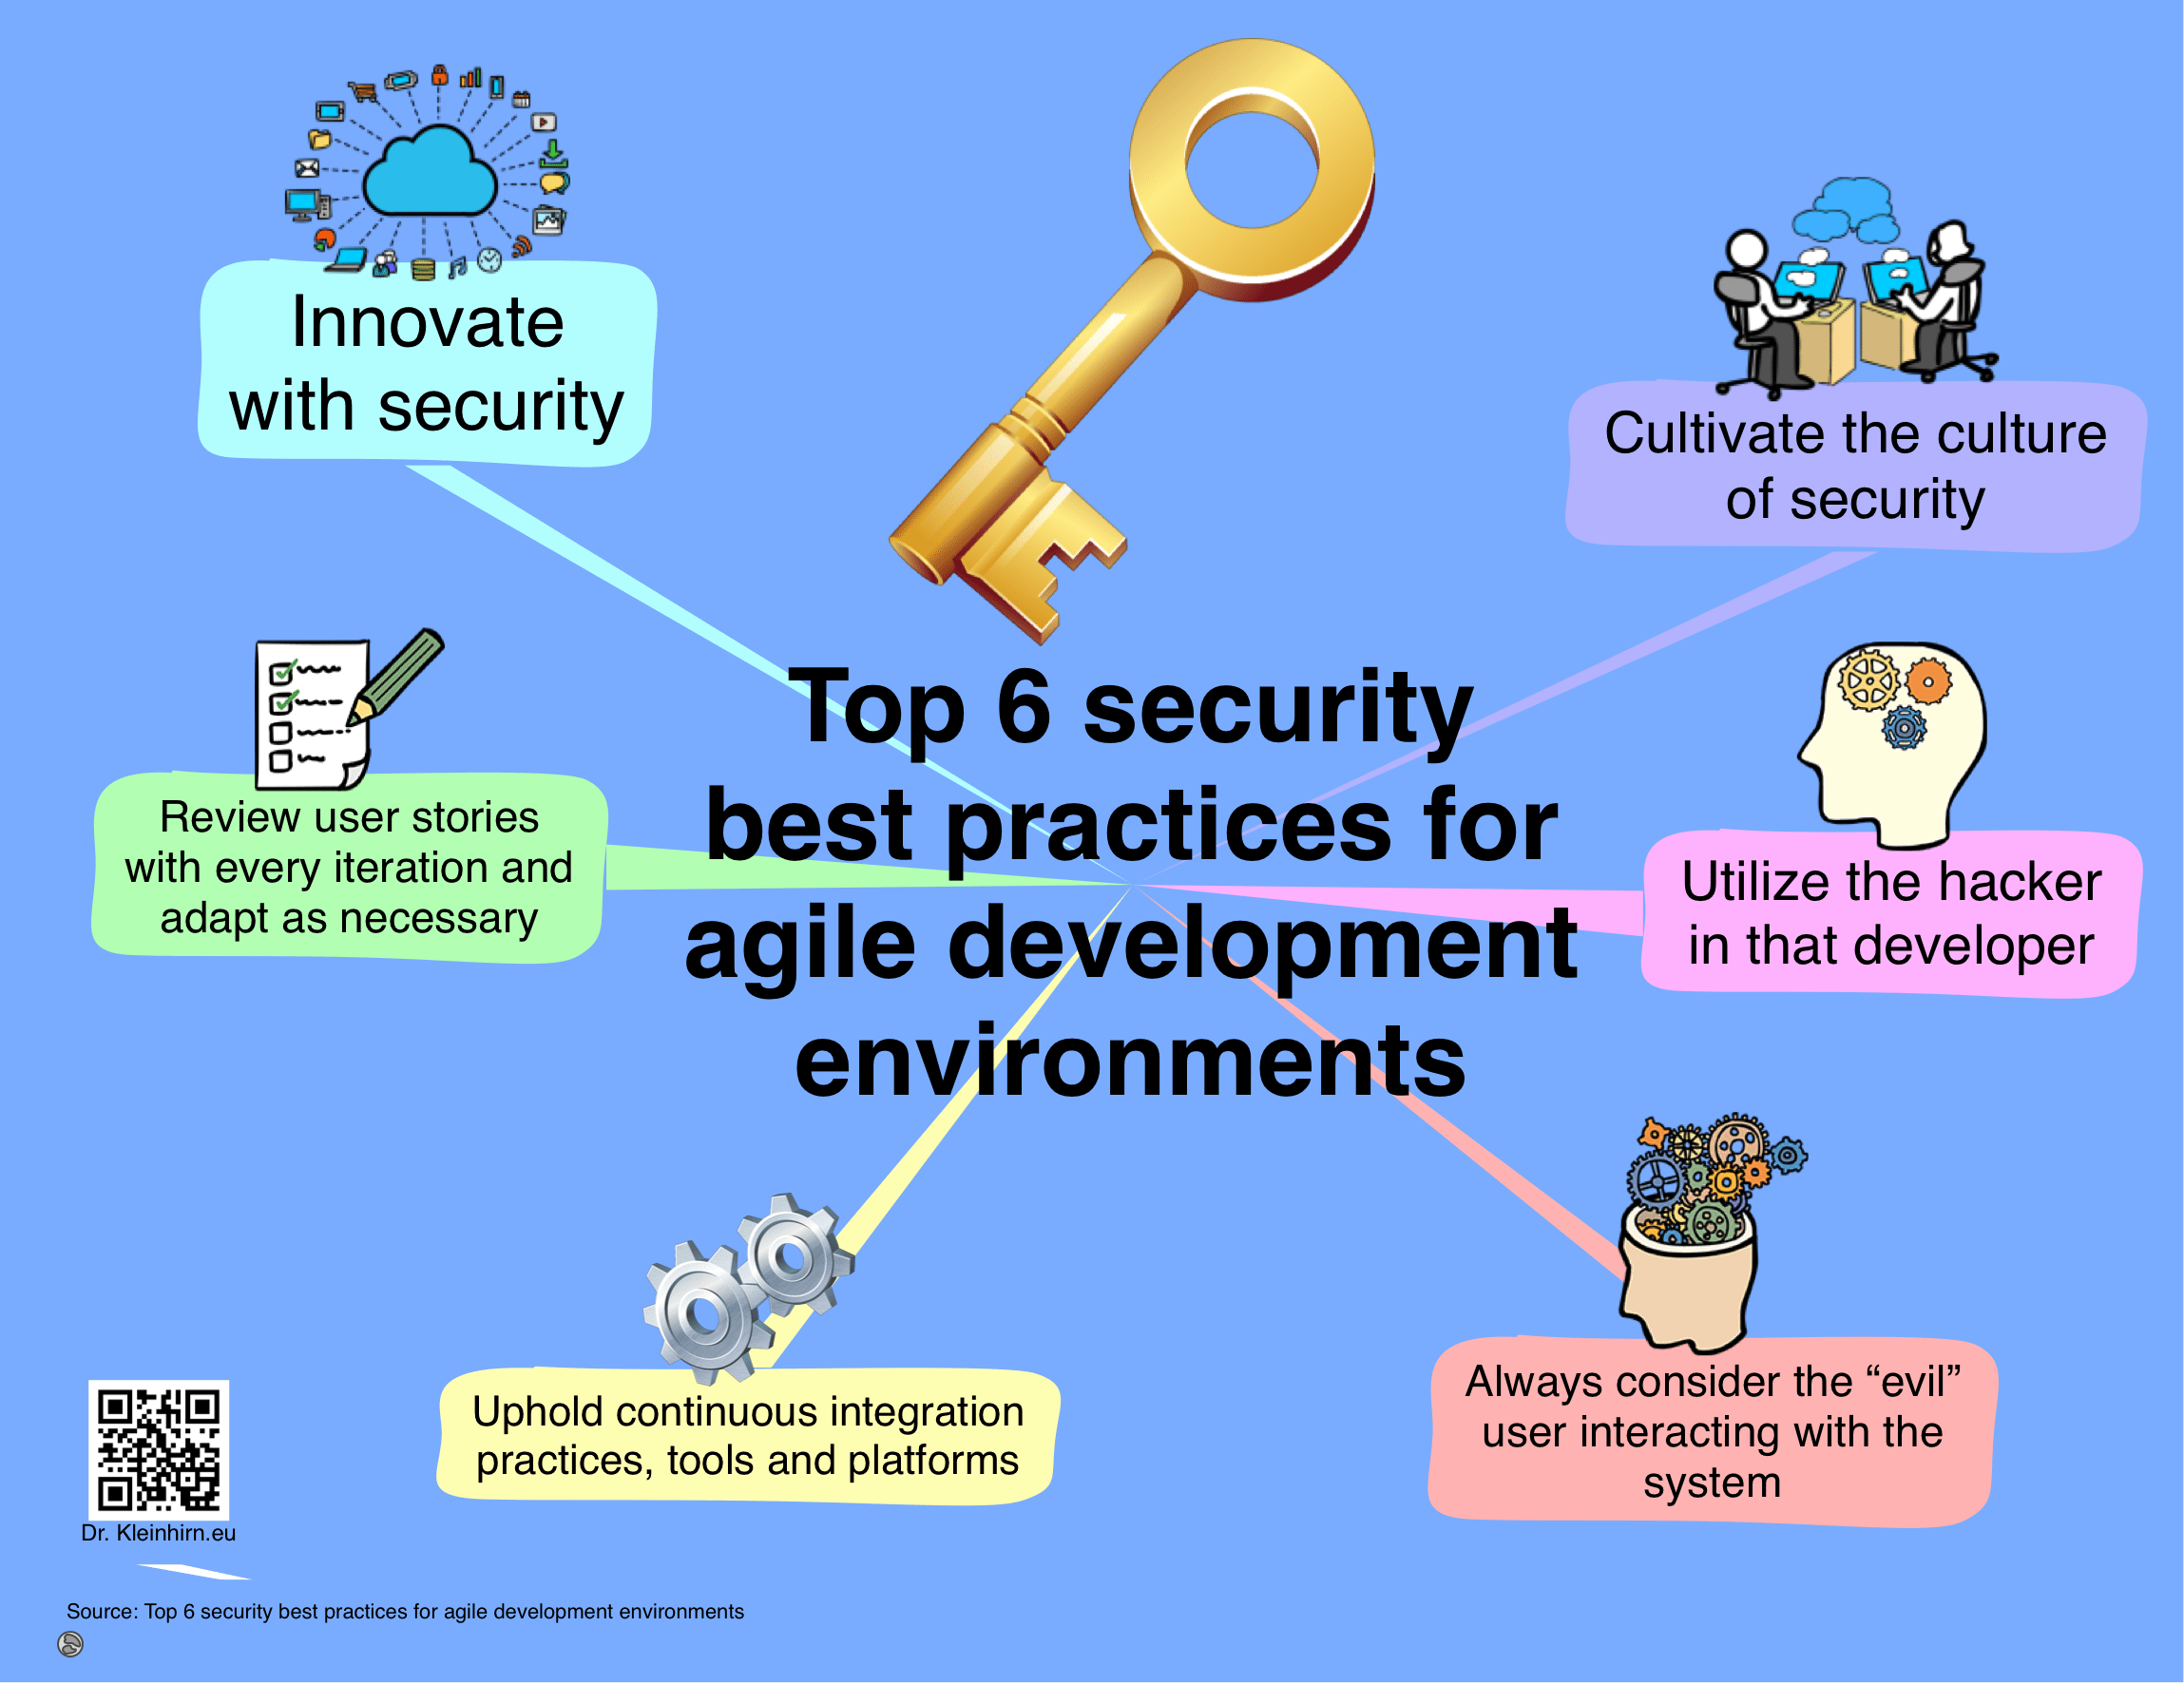 Top 6 security best practices for agile development environments